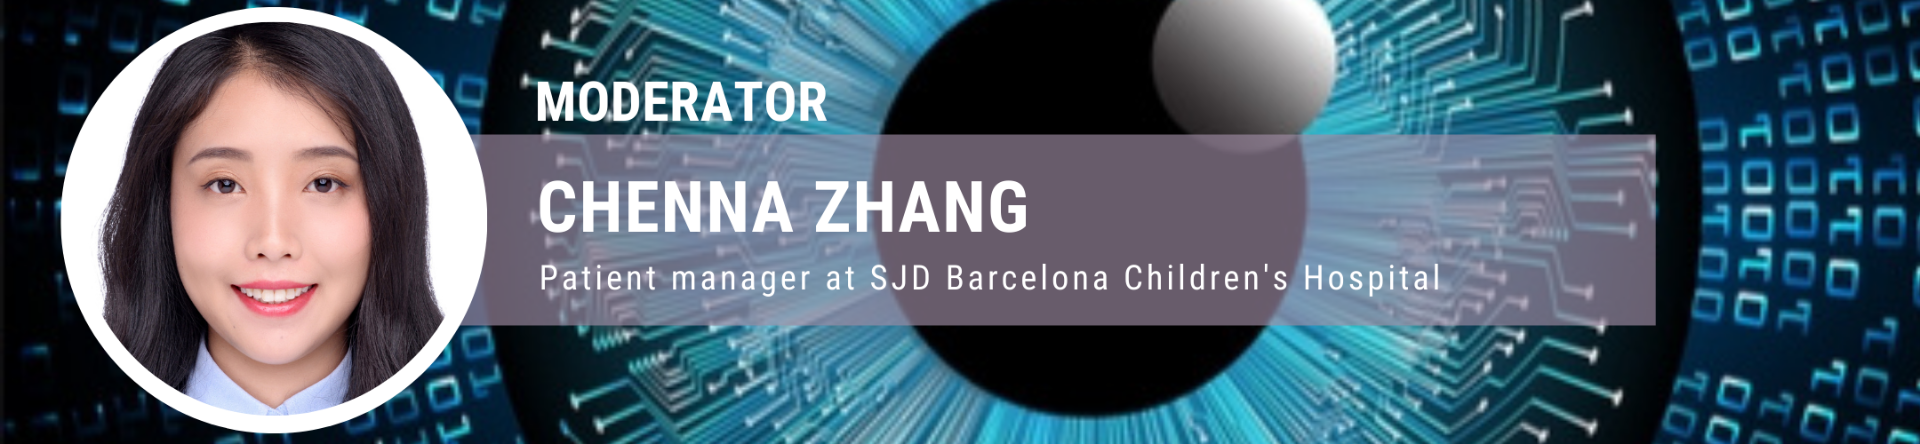 Chenna Zhang, patient manager at SJD Barcelona Children's Hospital.